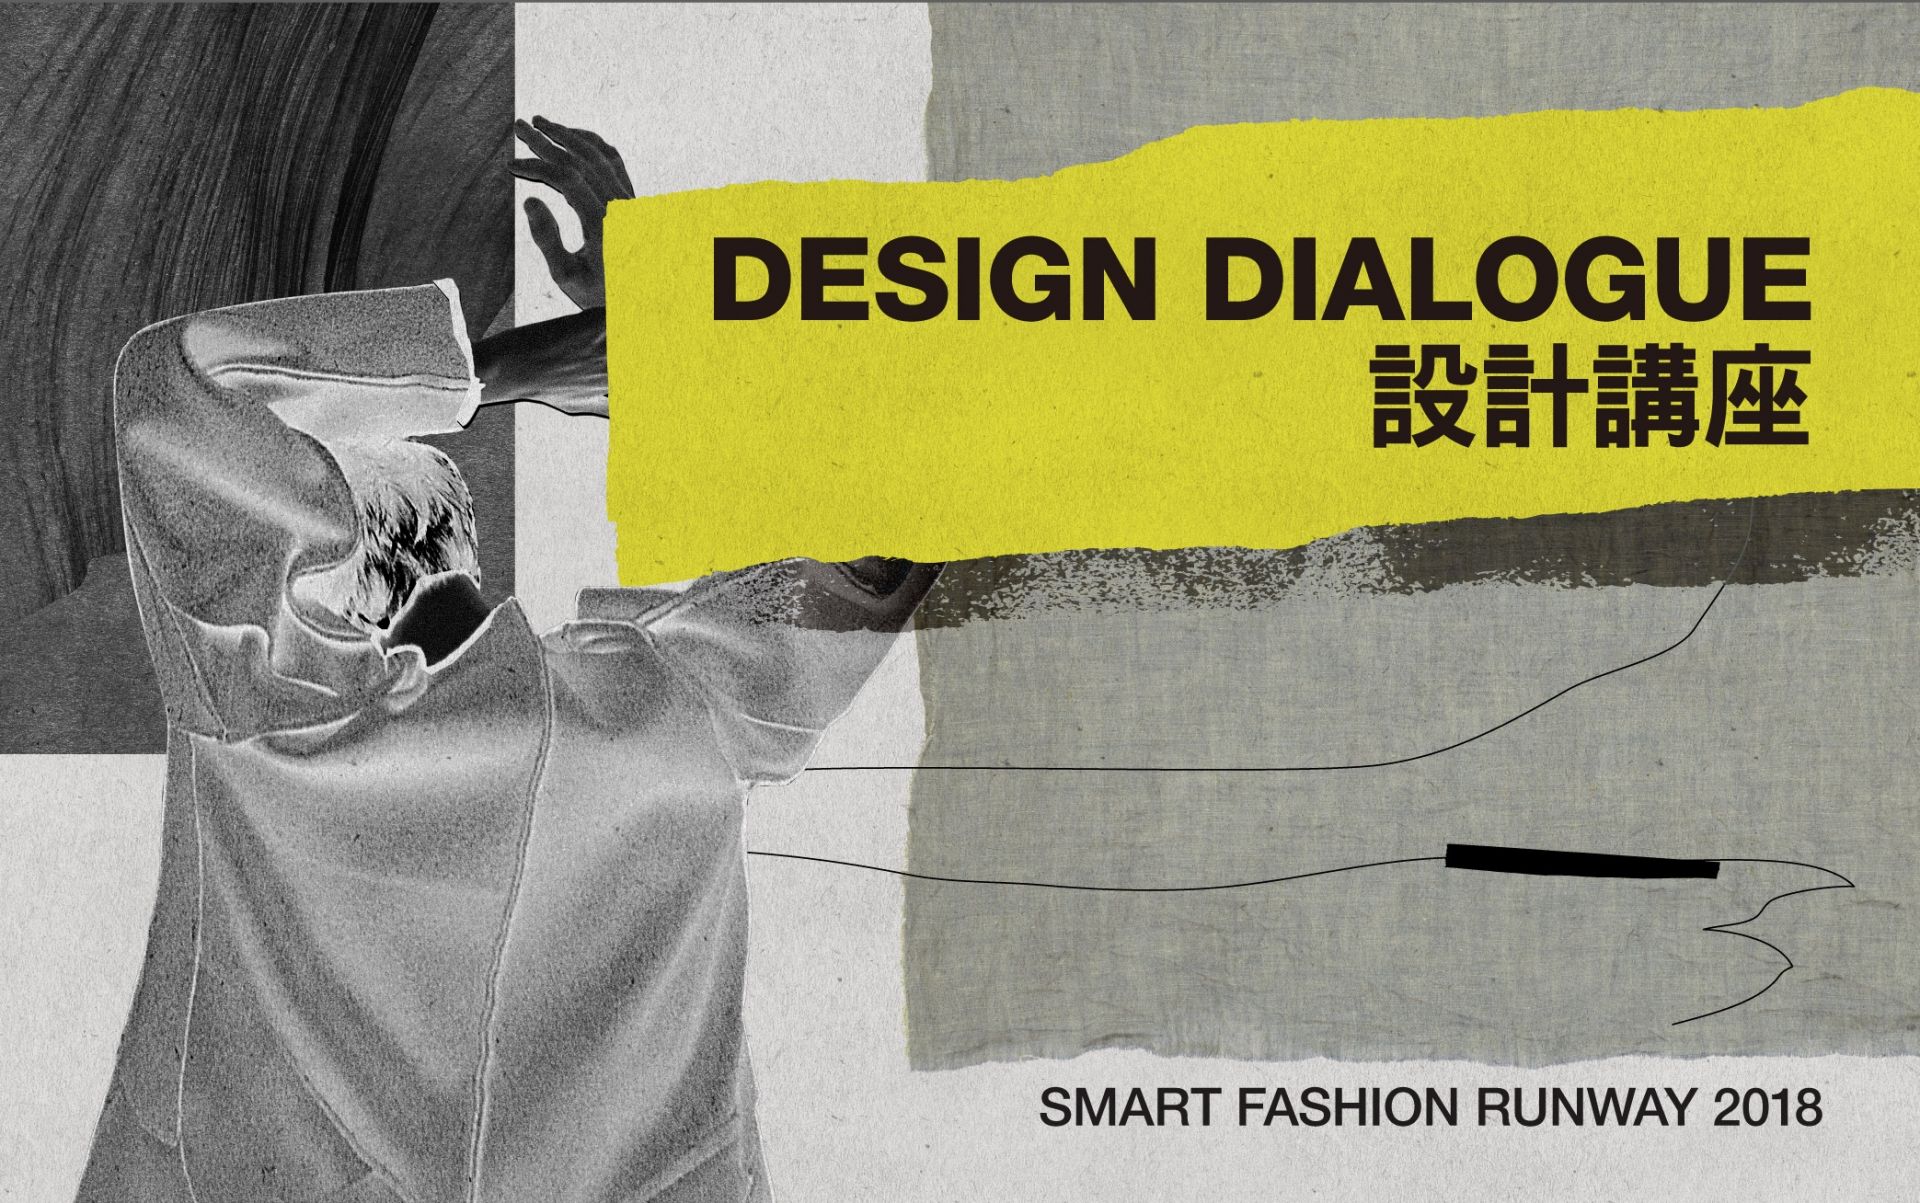 Smart Fashion Runway 2018 - Design Dialogues